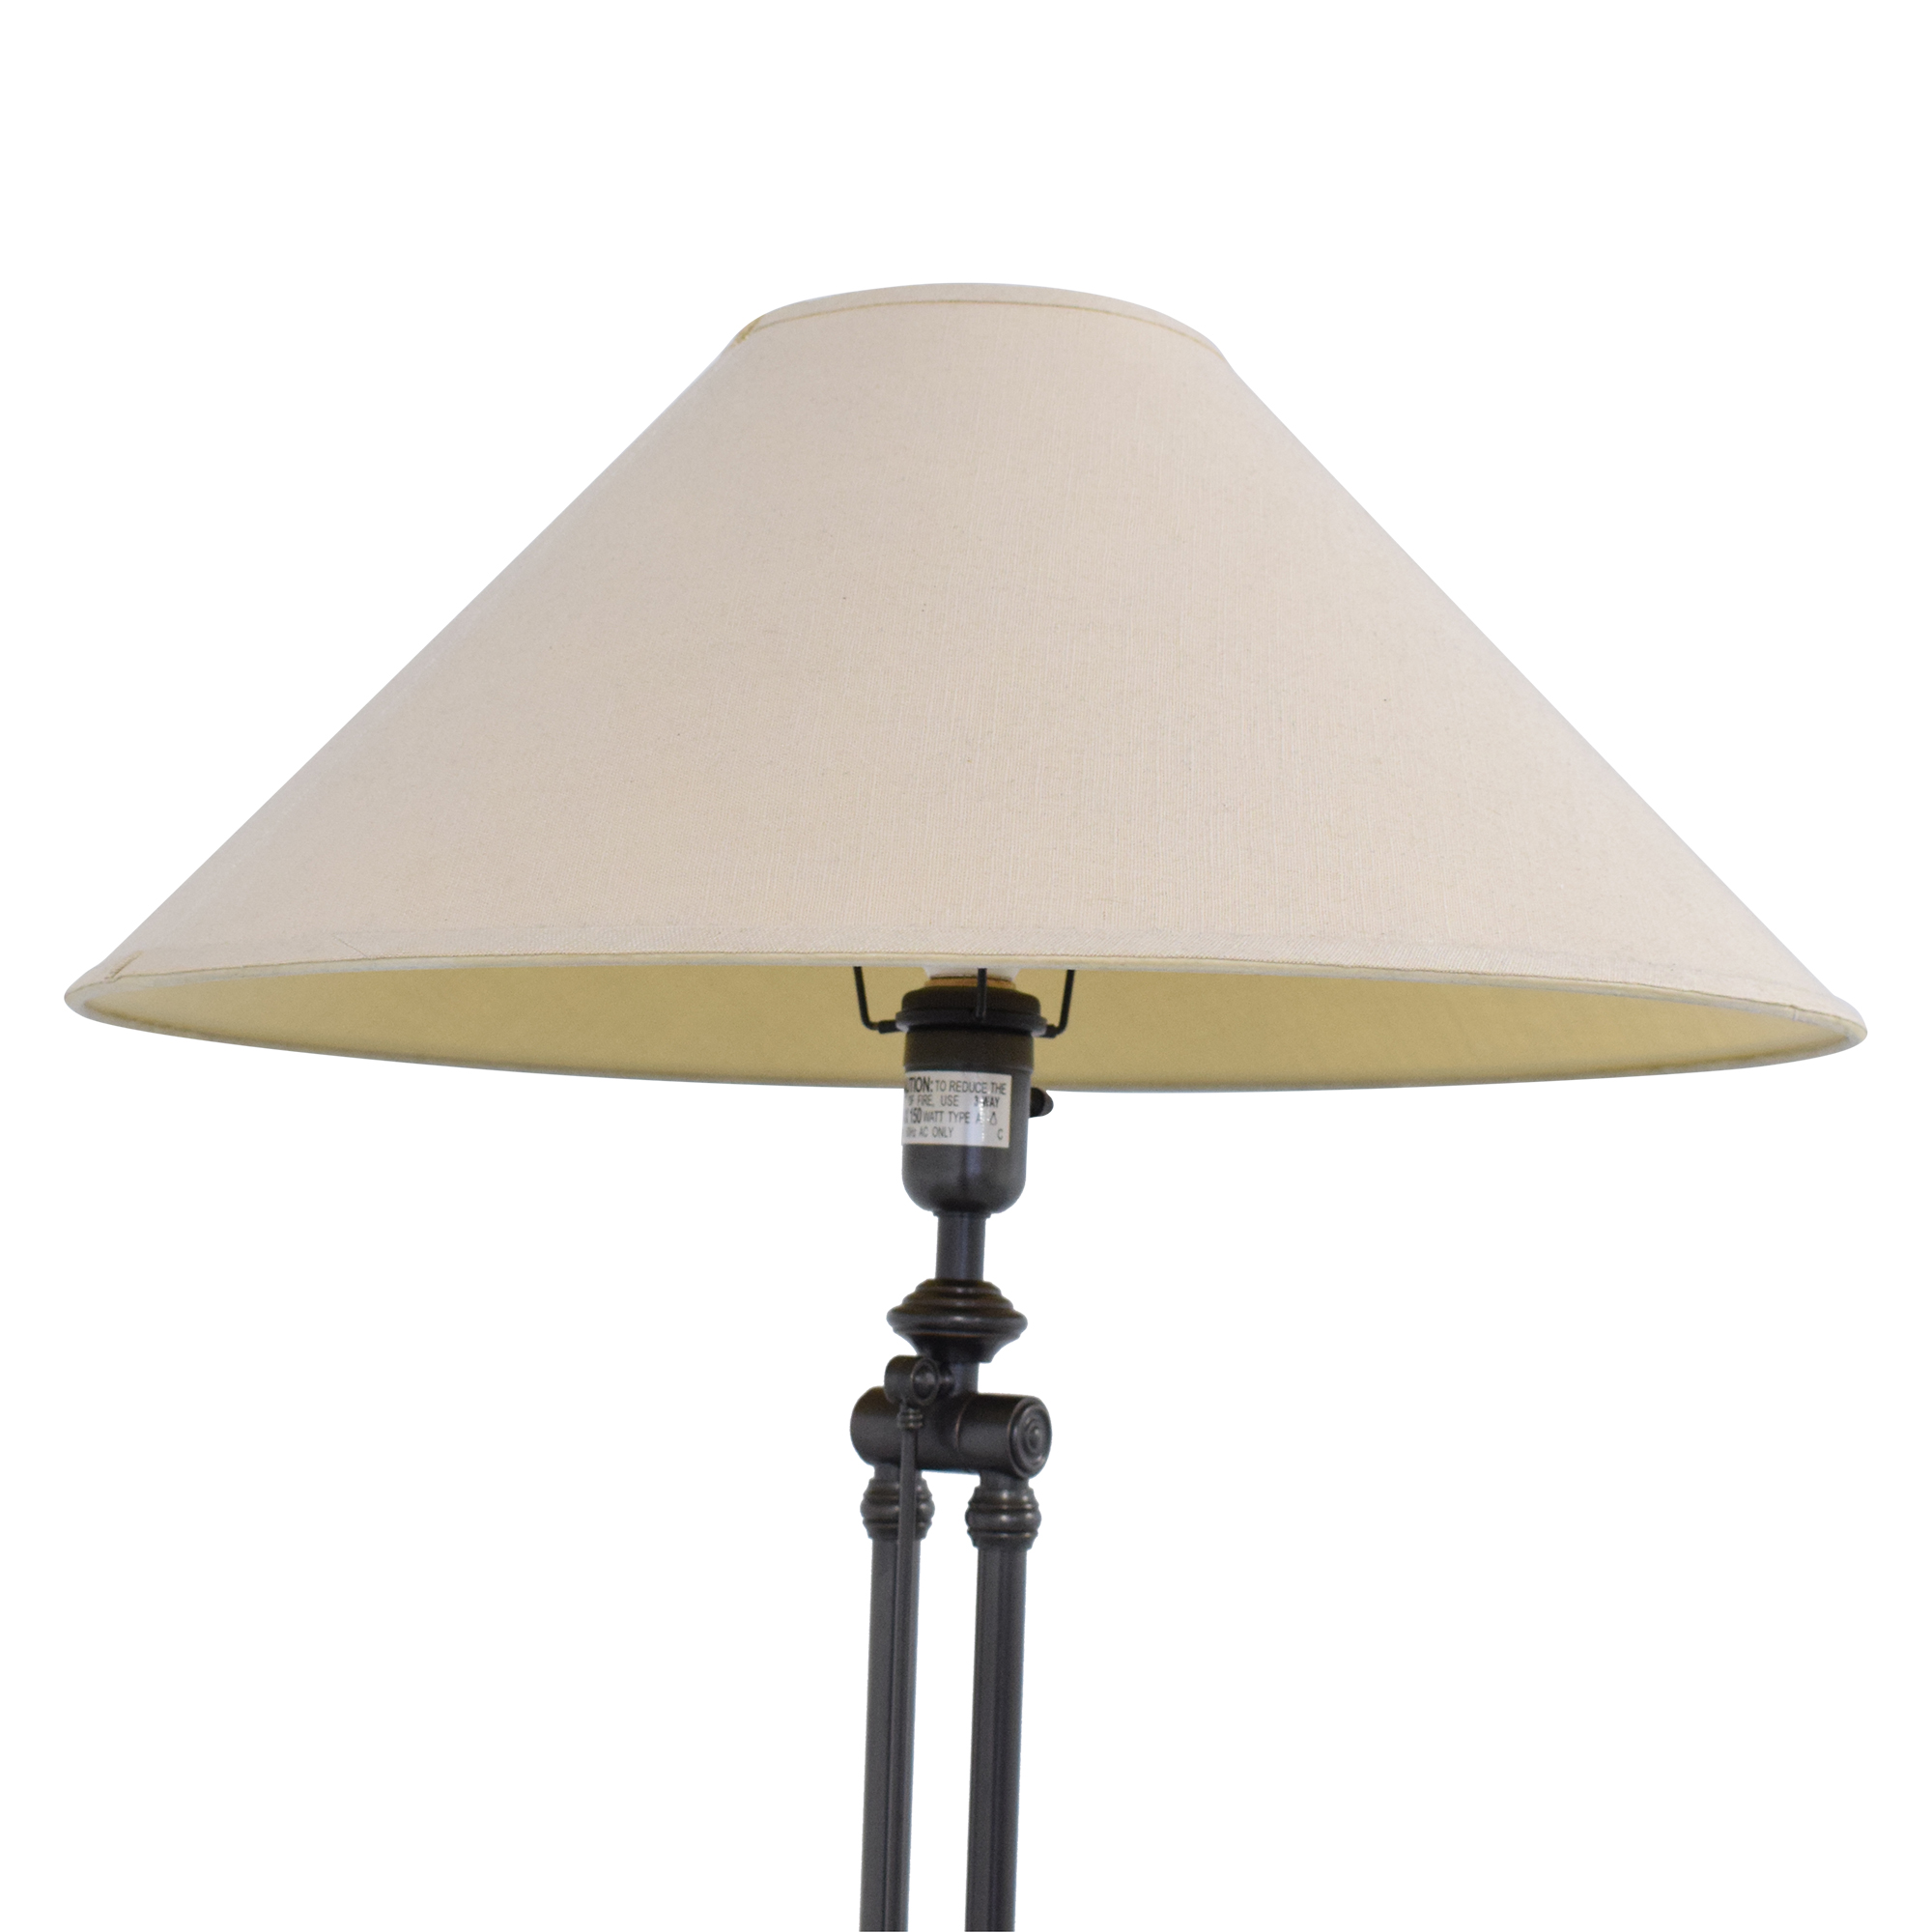 shop Pottery Barn Pottery Barn Articulating Floor Lamp online